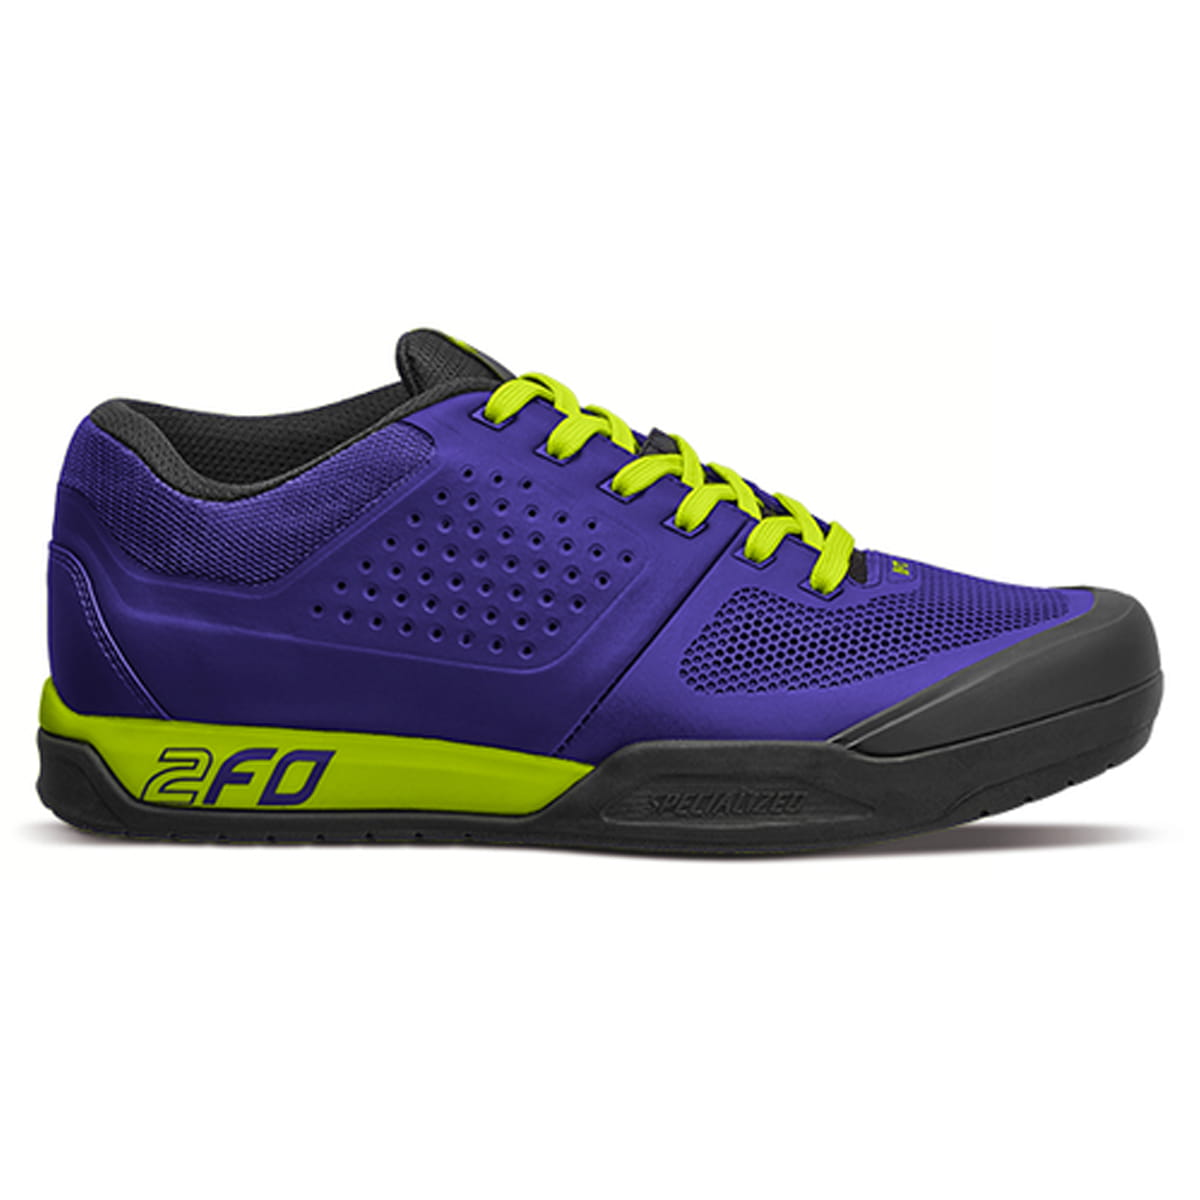 CHAUSSURES SPECIALIZED 2FO FLAT FEMME